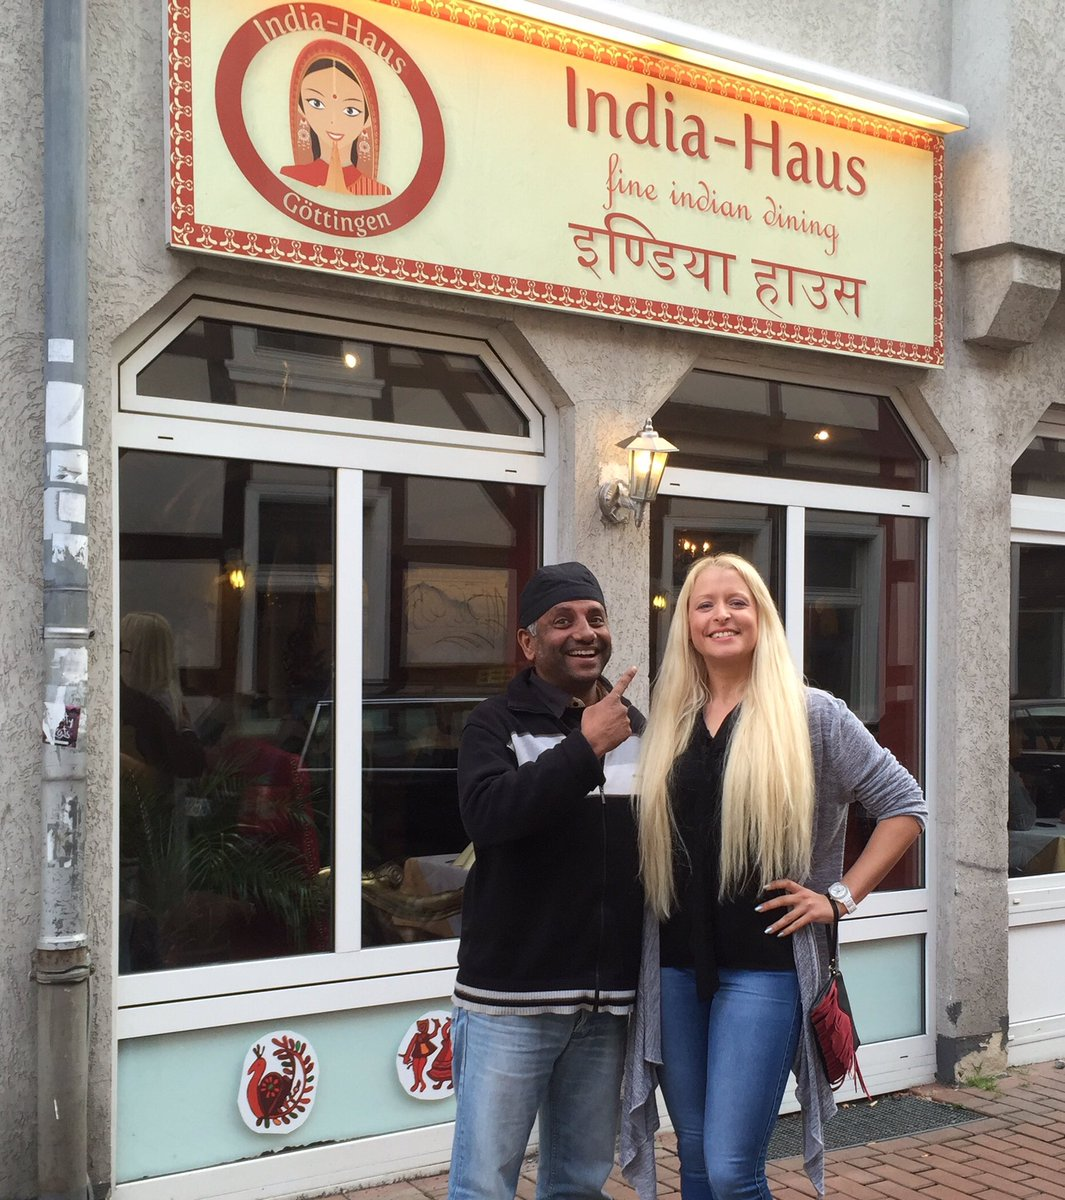 India Haus Göttingen prashant jaiswal on india haus göttingen germany